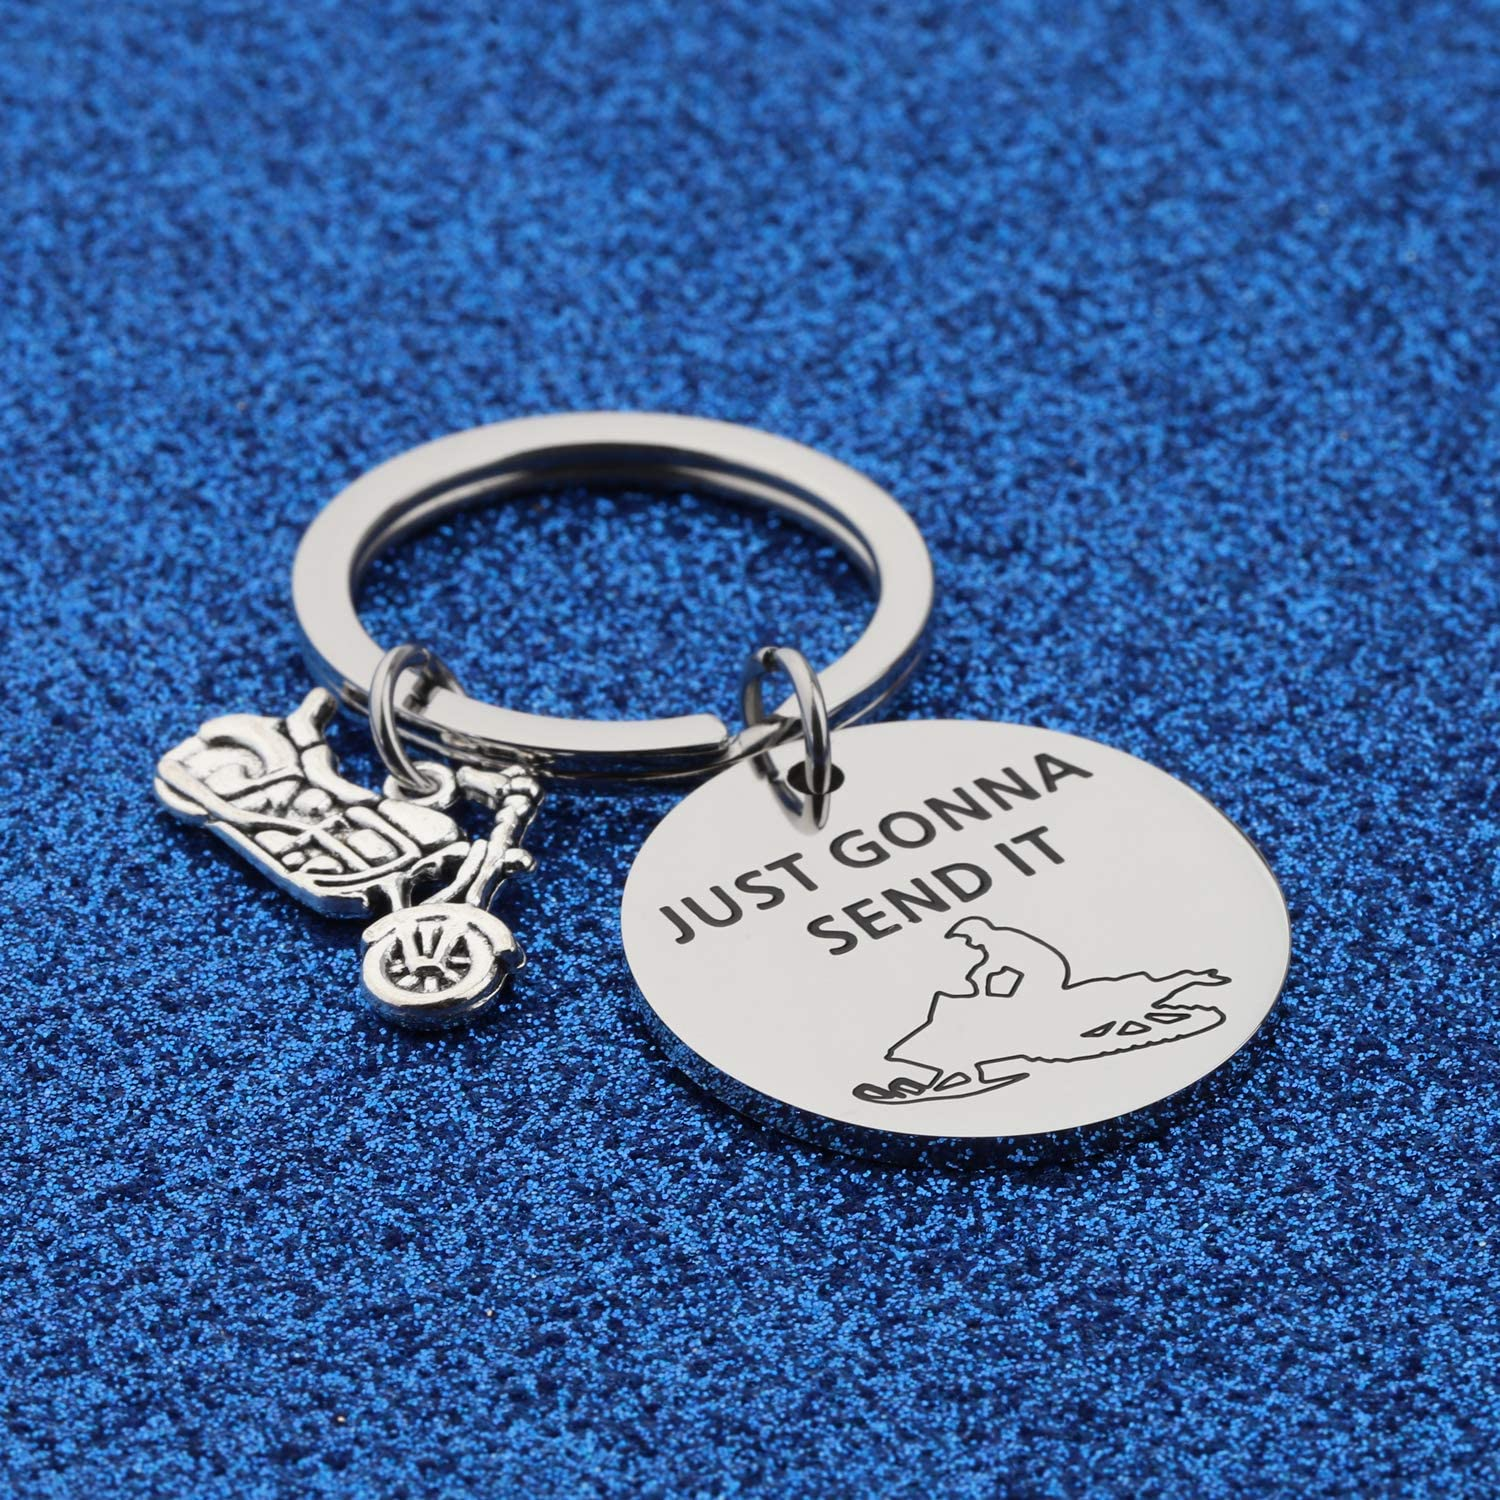 WUSUANED Snowmobiler Gift Just Gonna Send It Snowmobile Keychain Snowmobiling Gift for Riding Lover